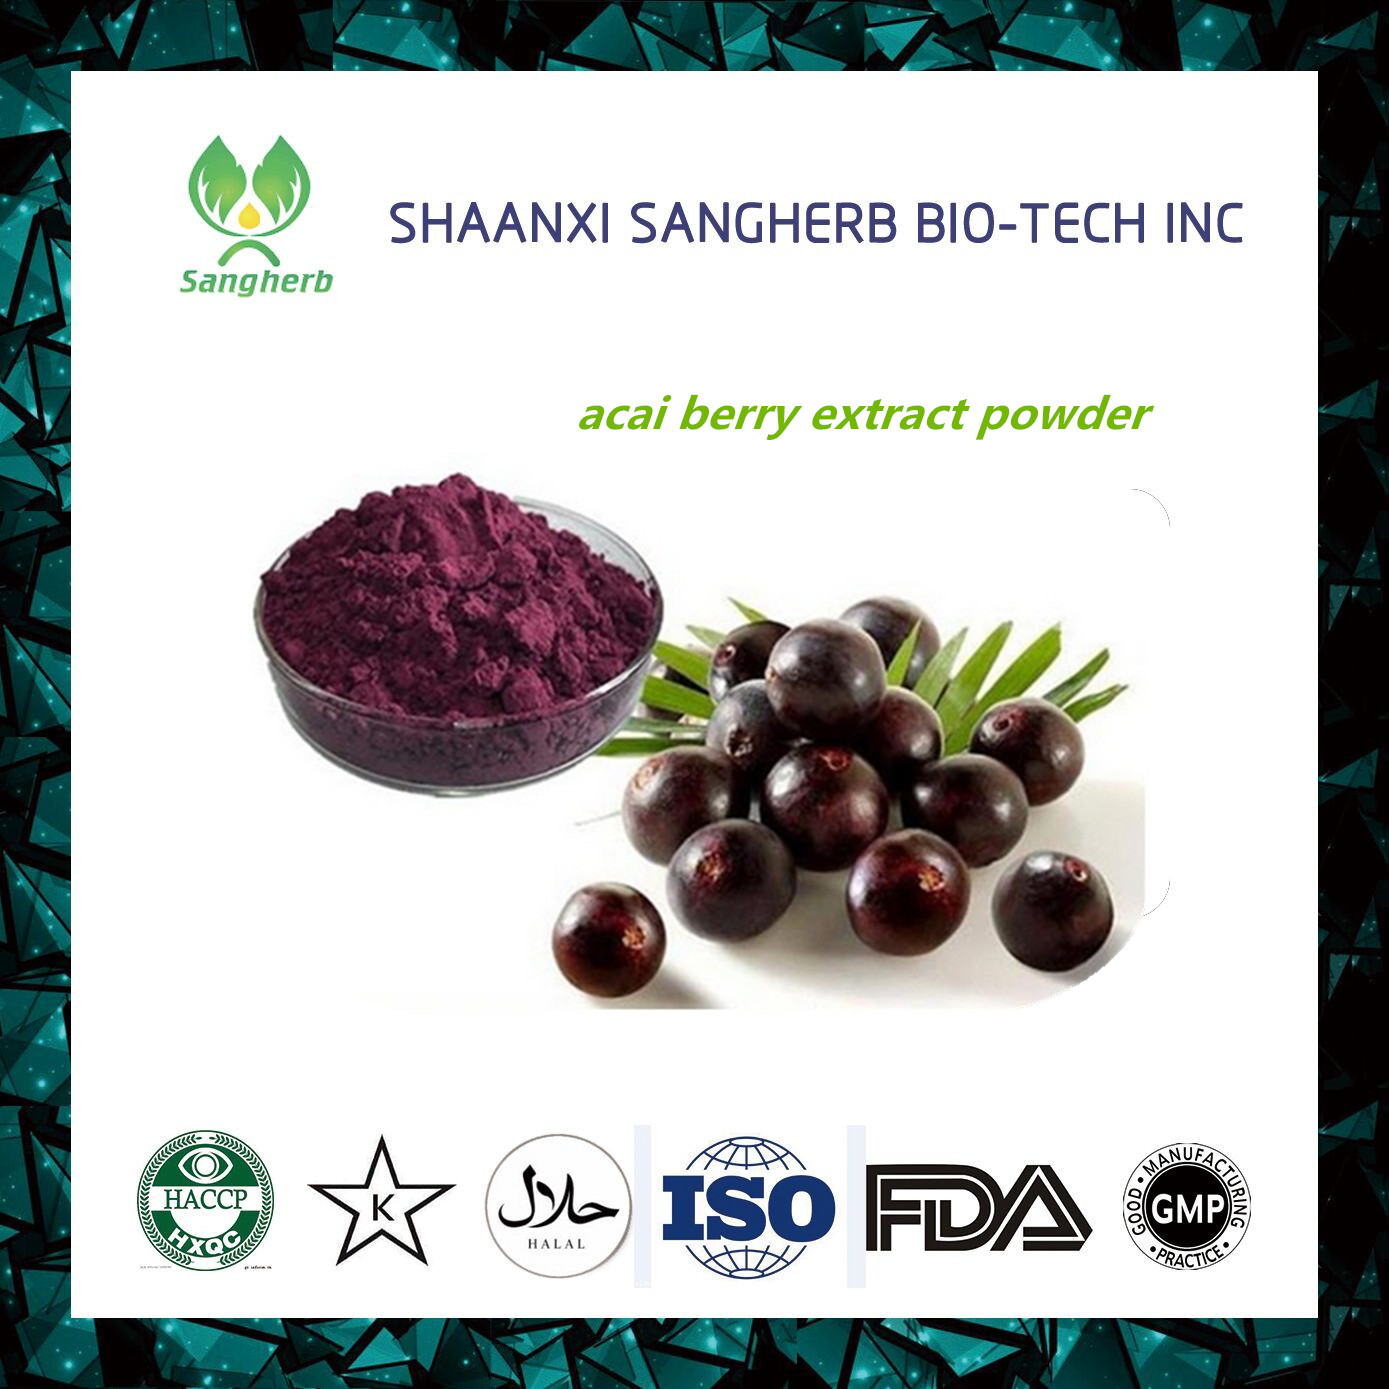 CE Certified gmp factory supply acai berry/ brazilian p.e. of and ISO9001 standard